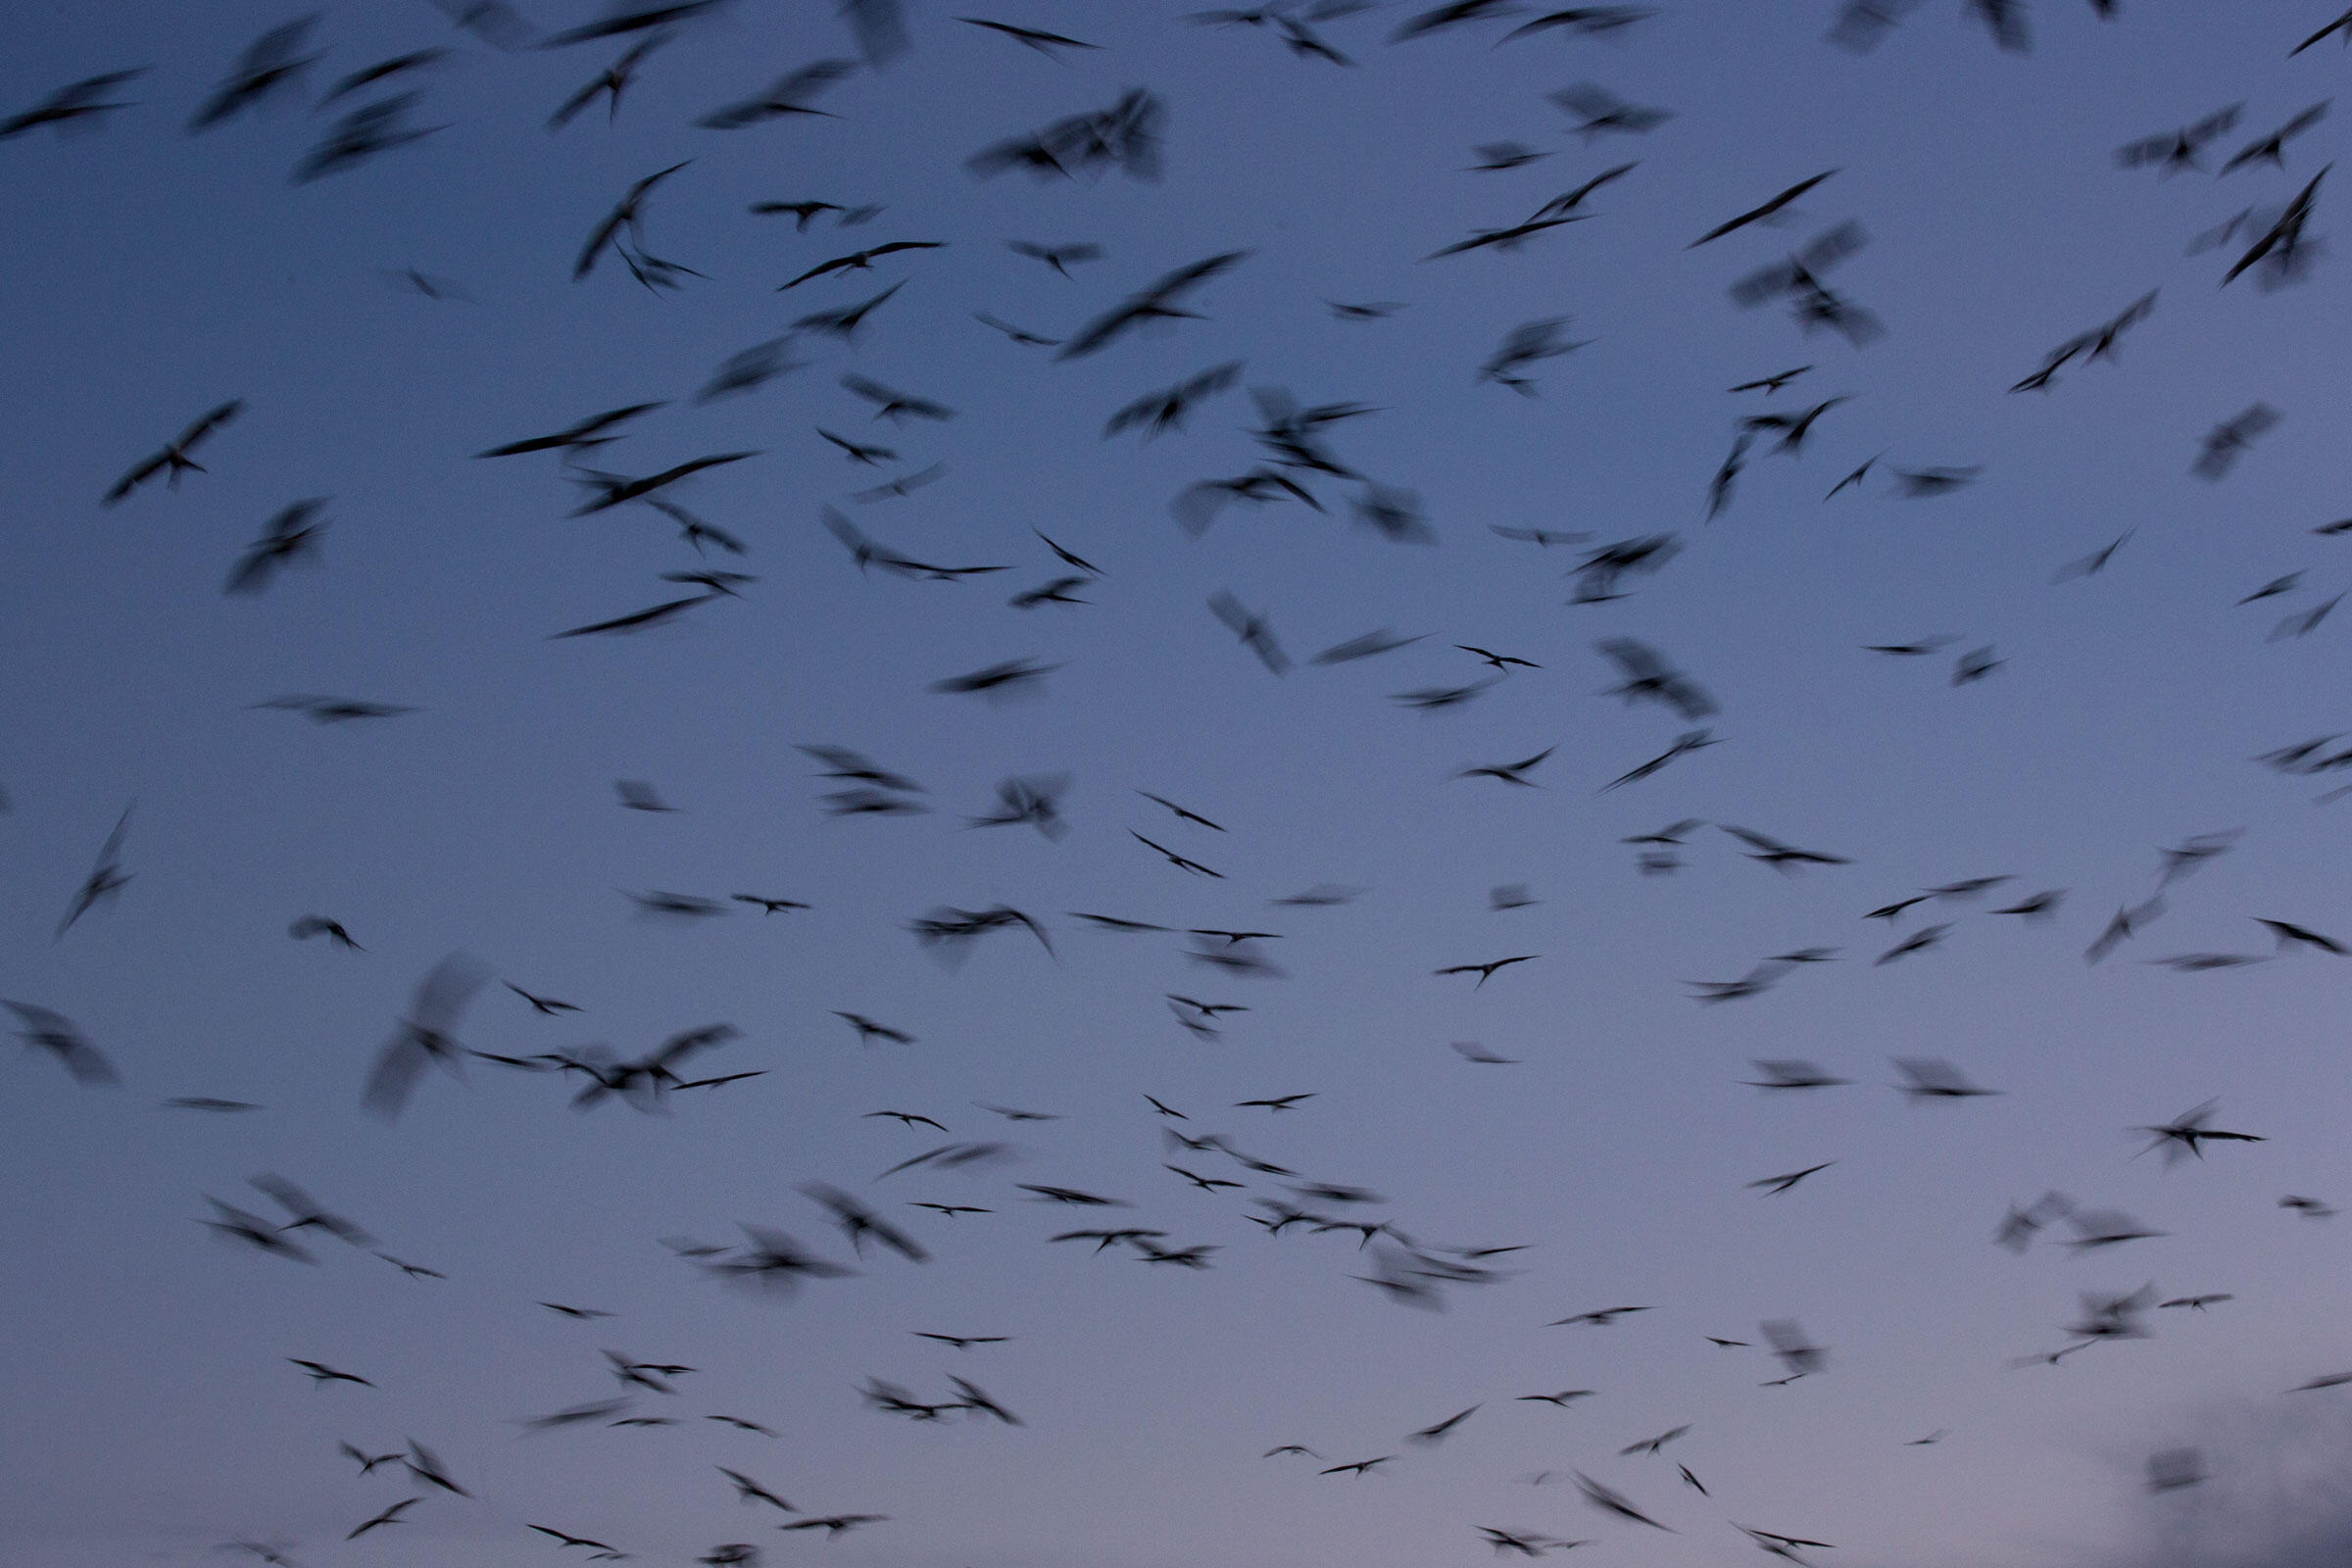 Before settling in for the night, kites fill the sky with swirling silhouettes. Mac Stone